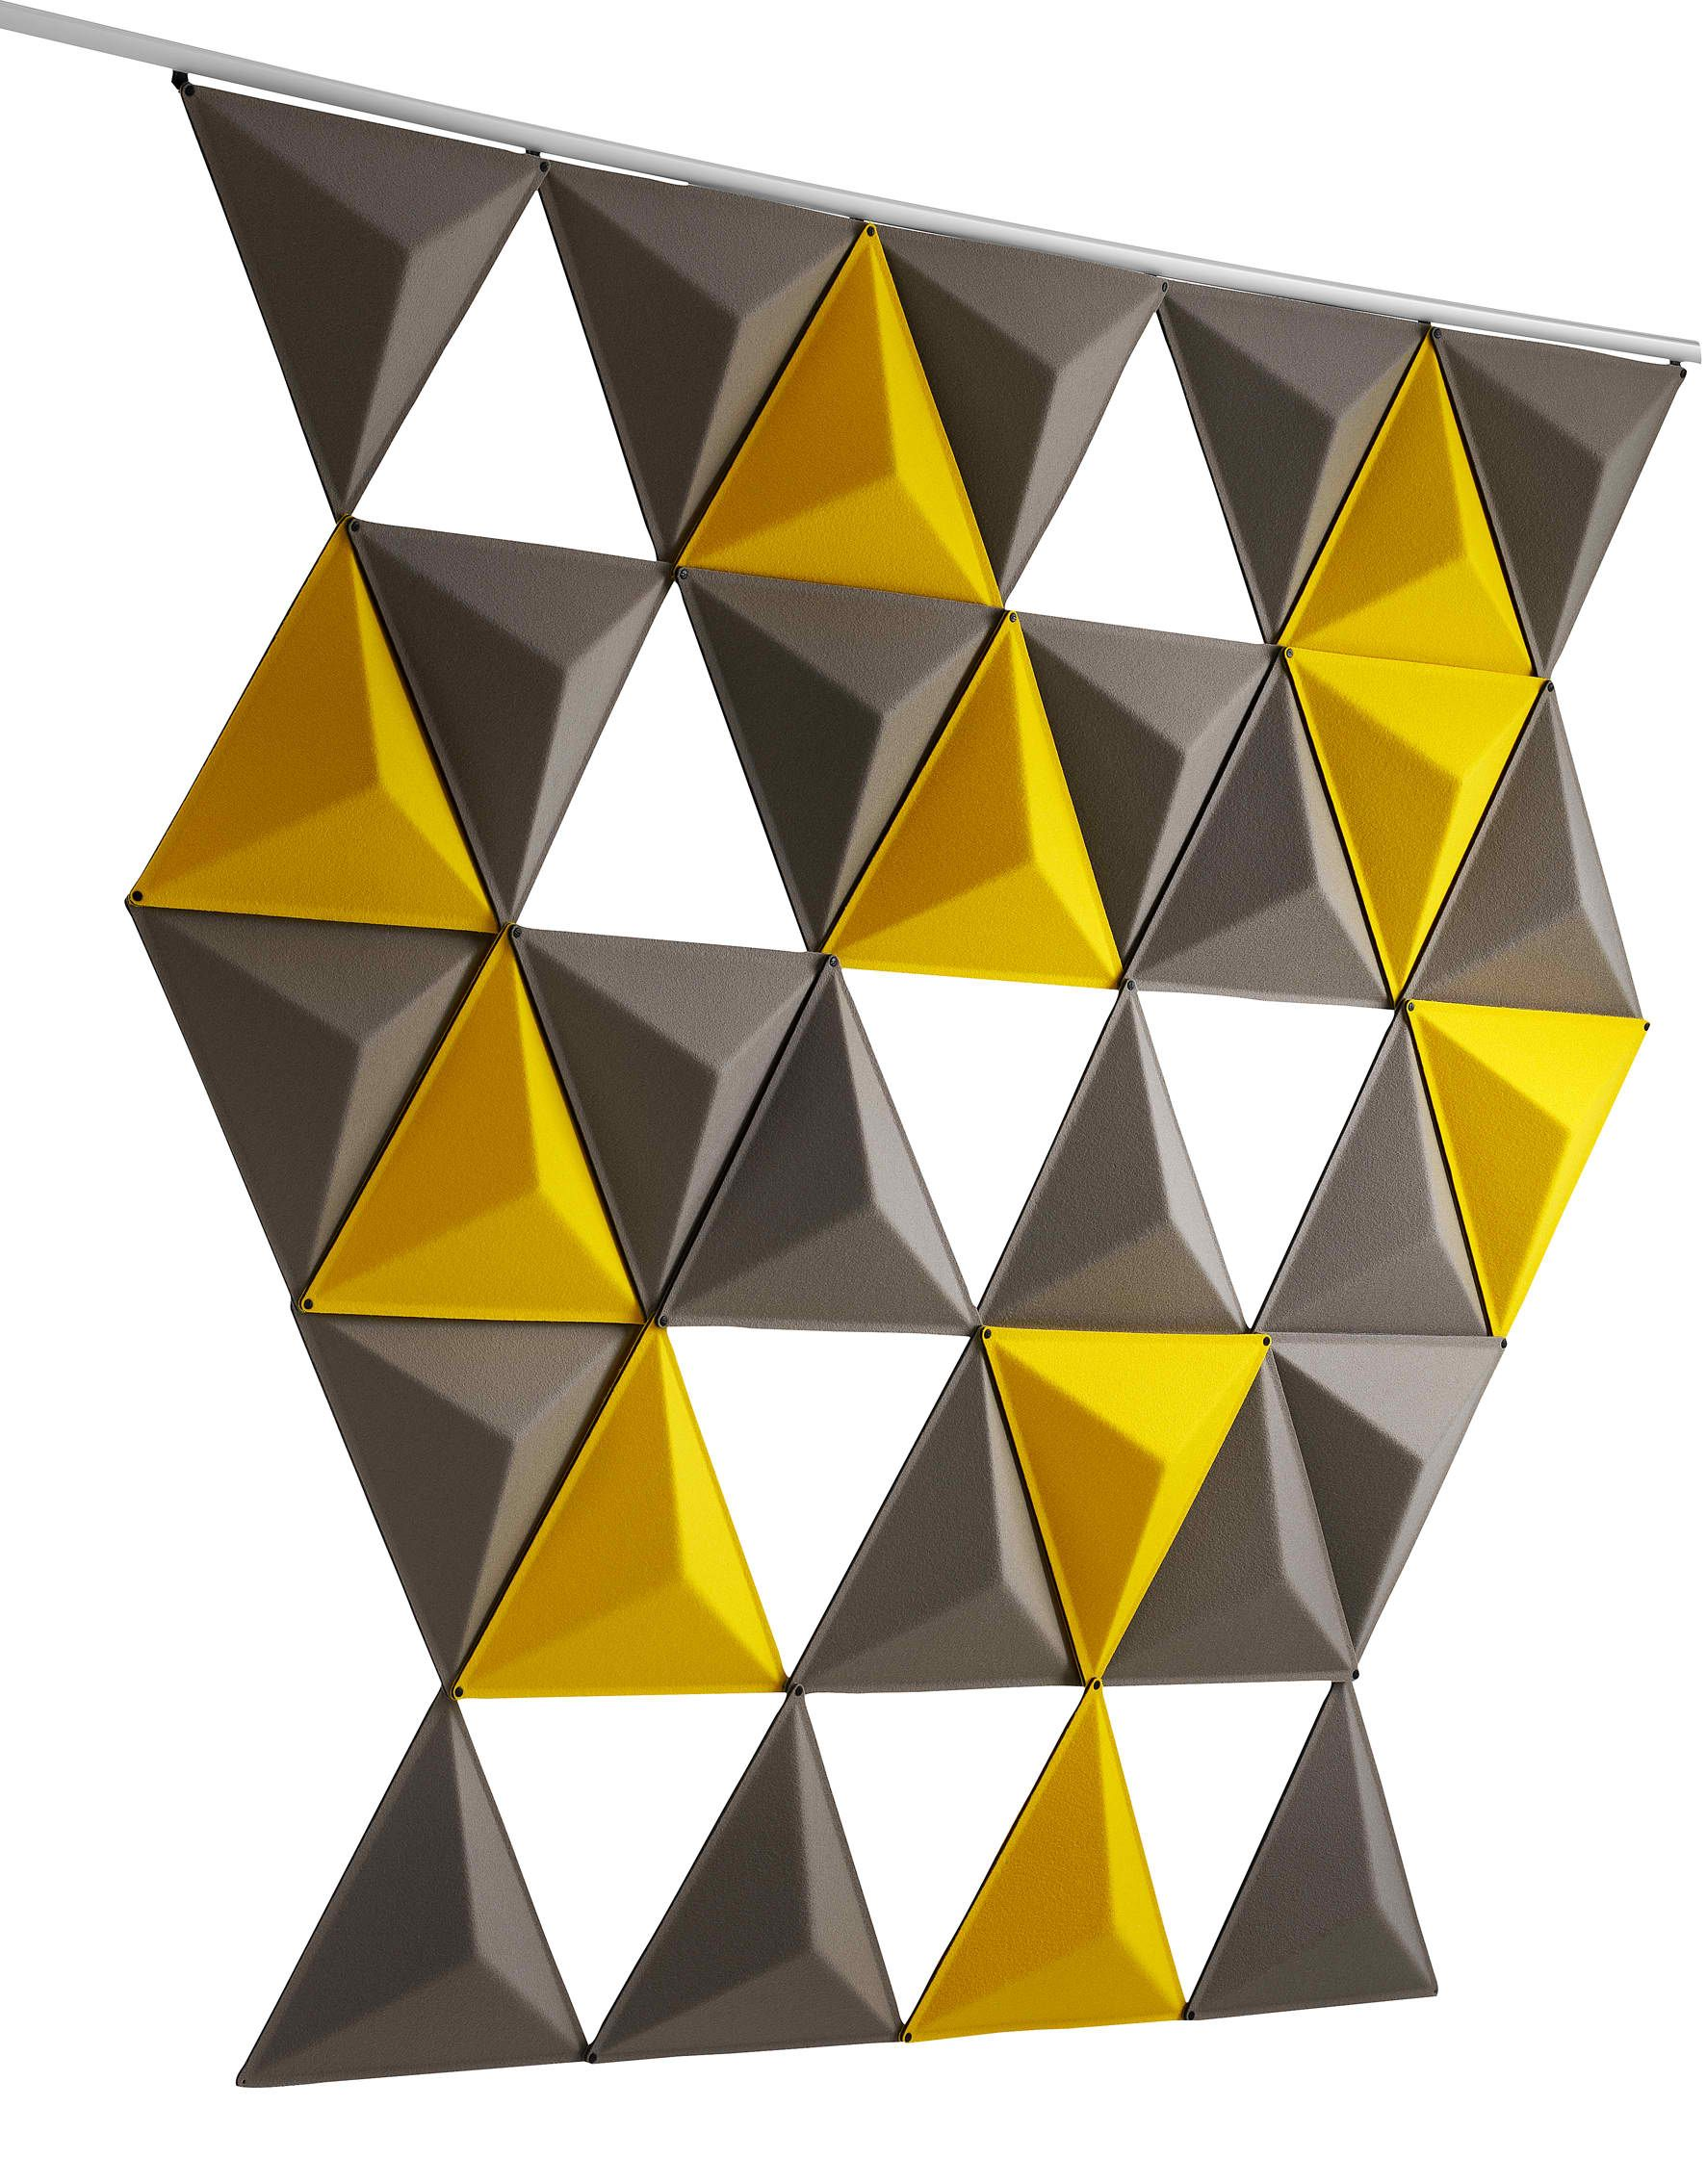 Aircone acoustic panel by Abstracta | Patterns | Pinterest ...